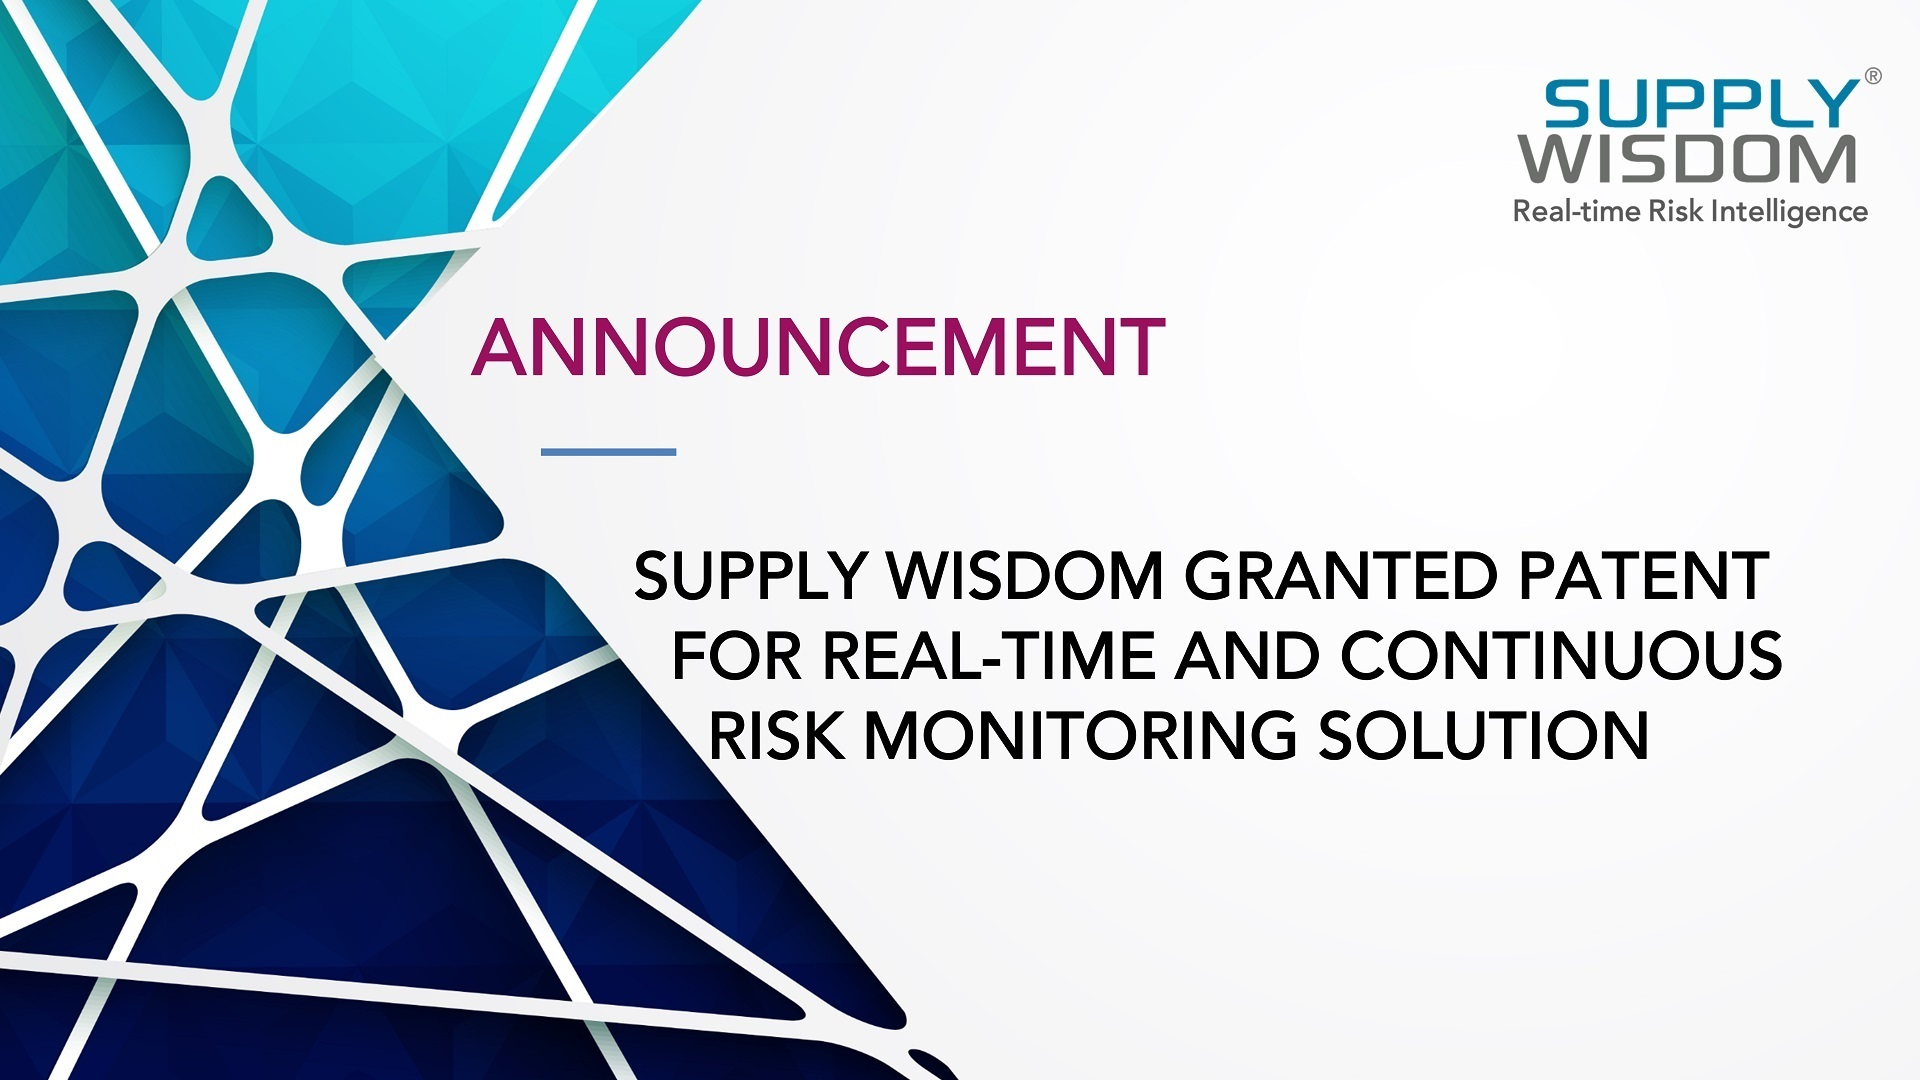 Supply Wisdom granted patent for continuous risk monitoring